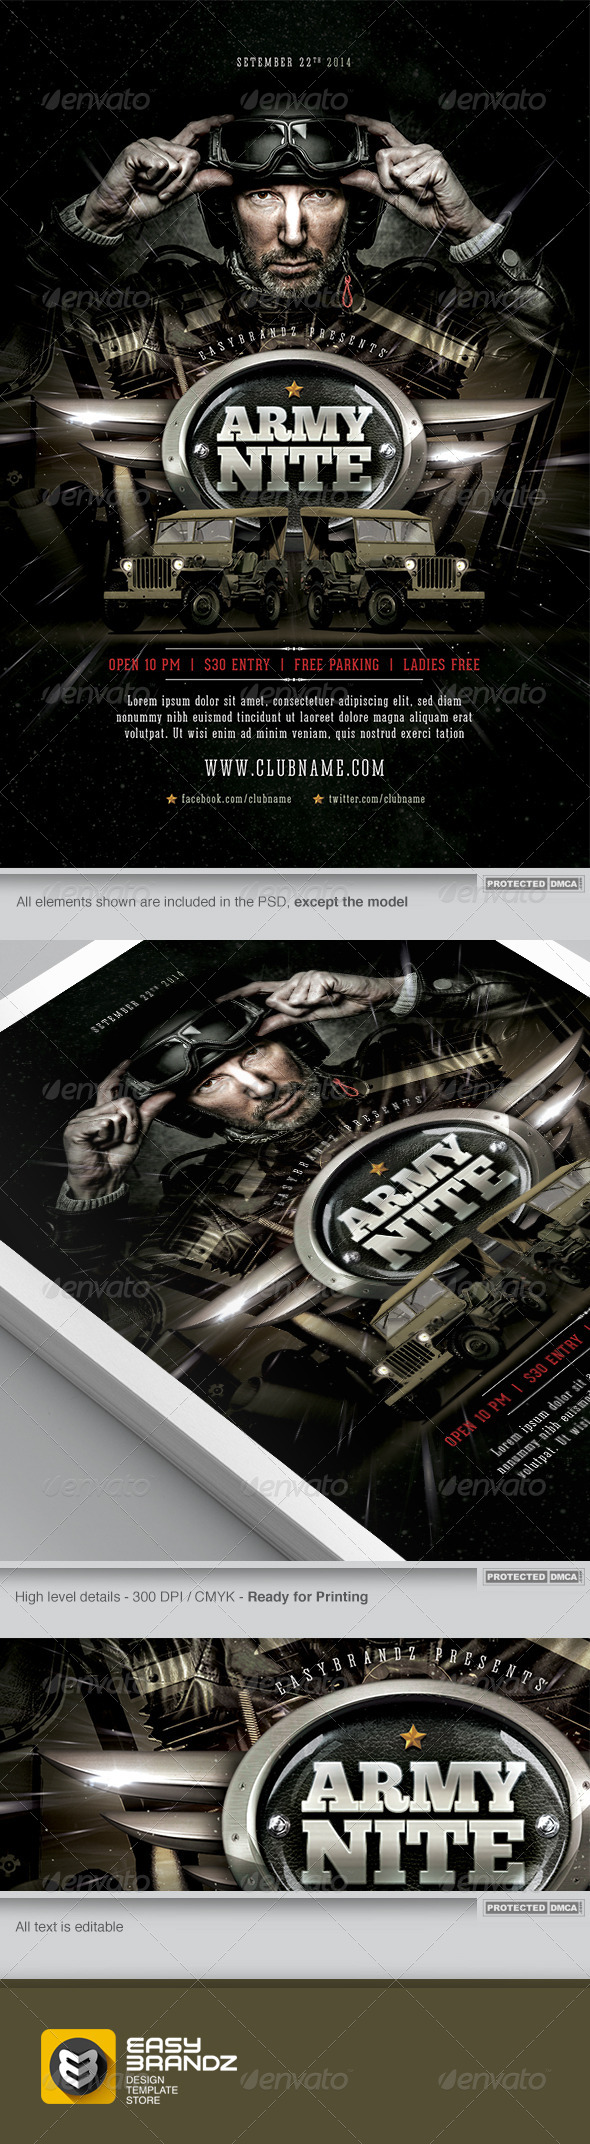 Army Nite Flyer Template - Events Flyers